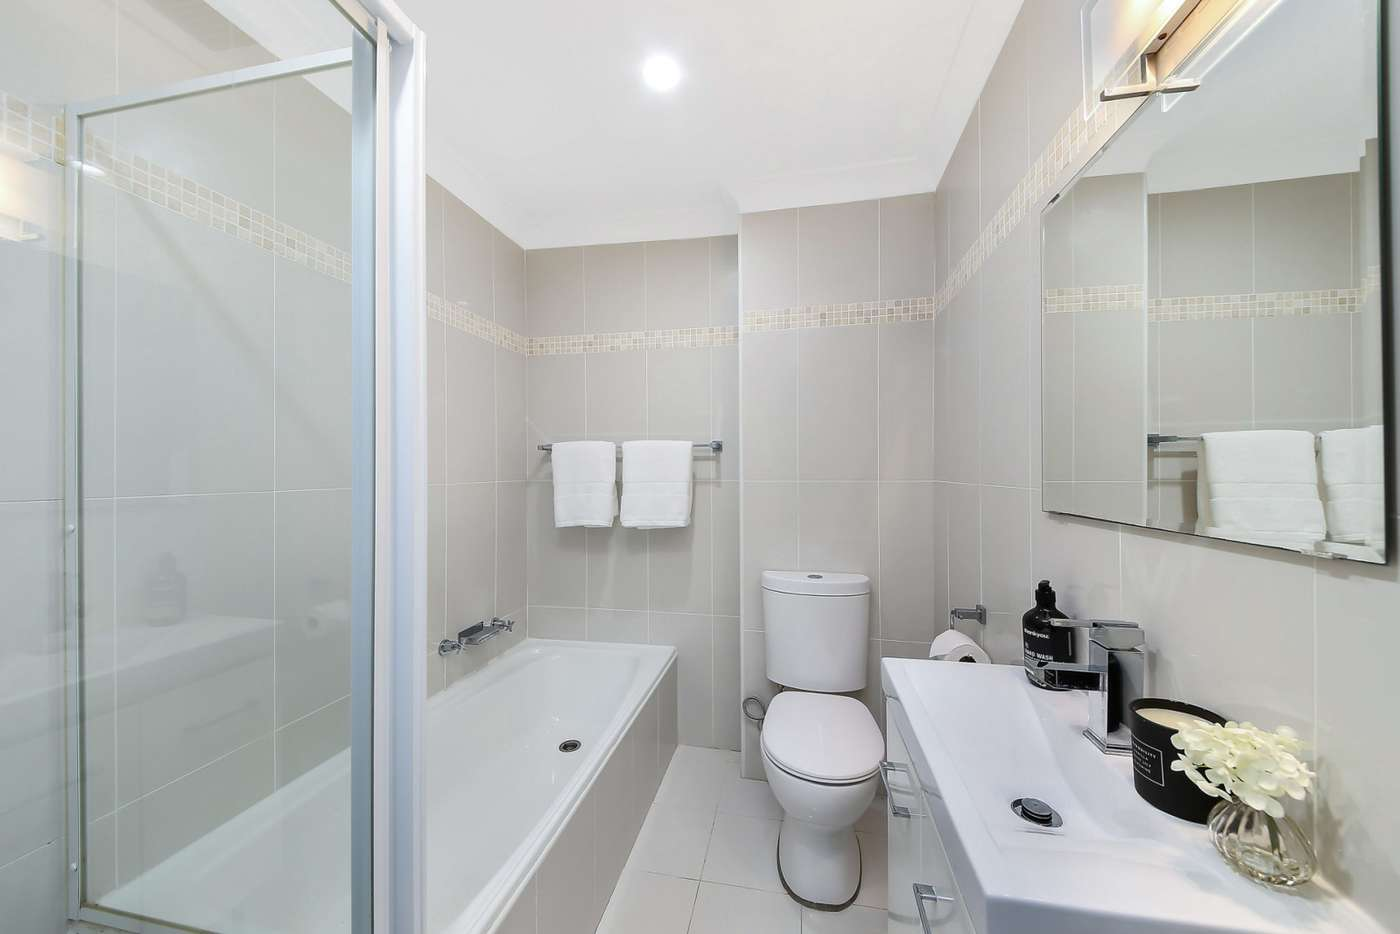 Fifth view of Homely townhouse listing, 16/19 Taranto Road, Marsfield NSW 2122